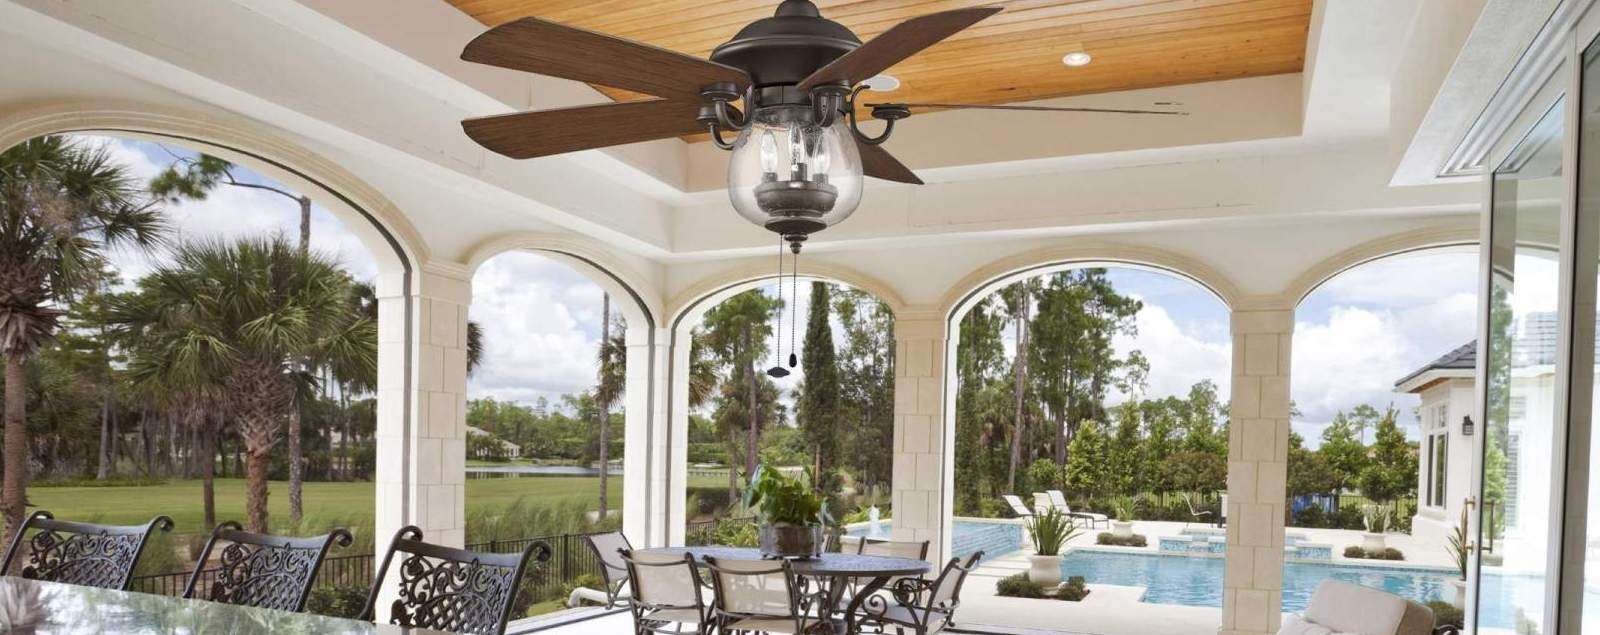 Heavy Duty Outdoor Ceiling Fans With Regard To Most Recent Outdoor Ceiling Fans – Shop Wet, Dry, And Damp Rated Outdoor Fans (View 13 of 20)